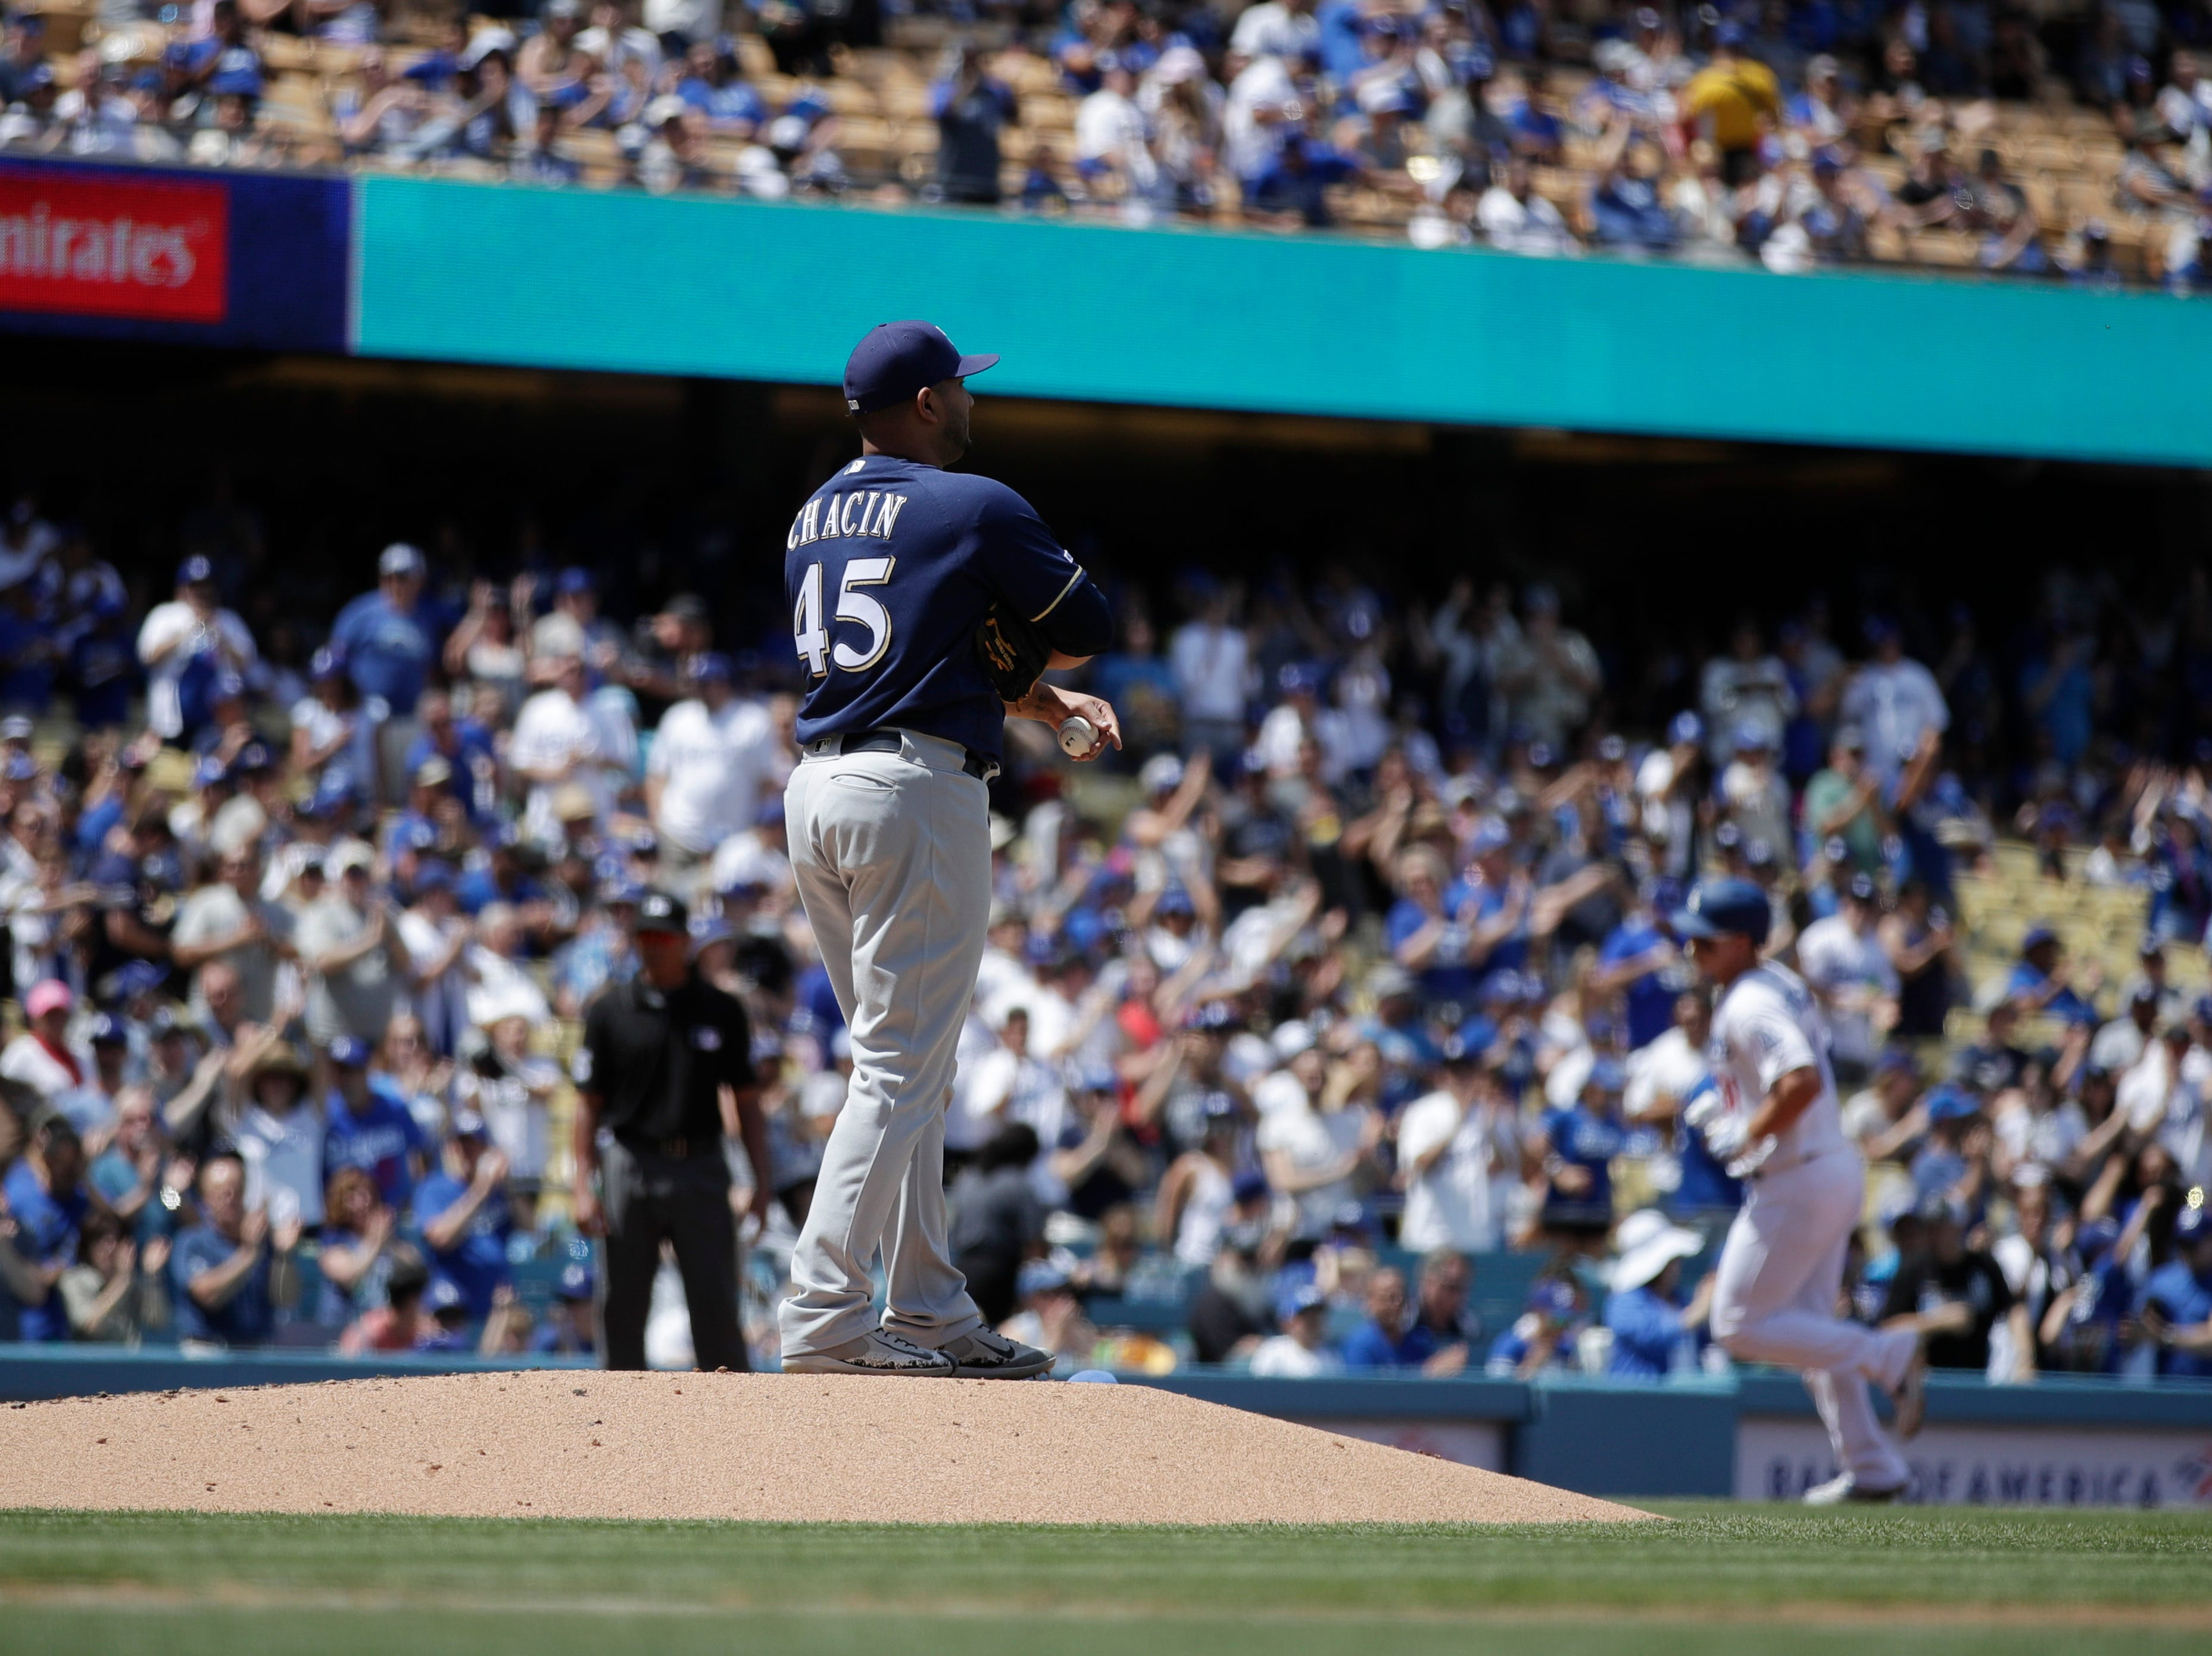 Brewers starting pitcher Jhoulys Chacin stands on the mound as Los Angeles Dodgers' Joc Pederson rounds the bases after hitting a home run in the second inning Sunday.